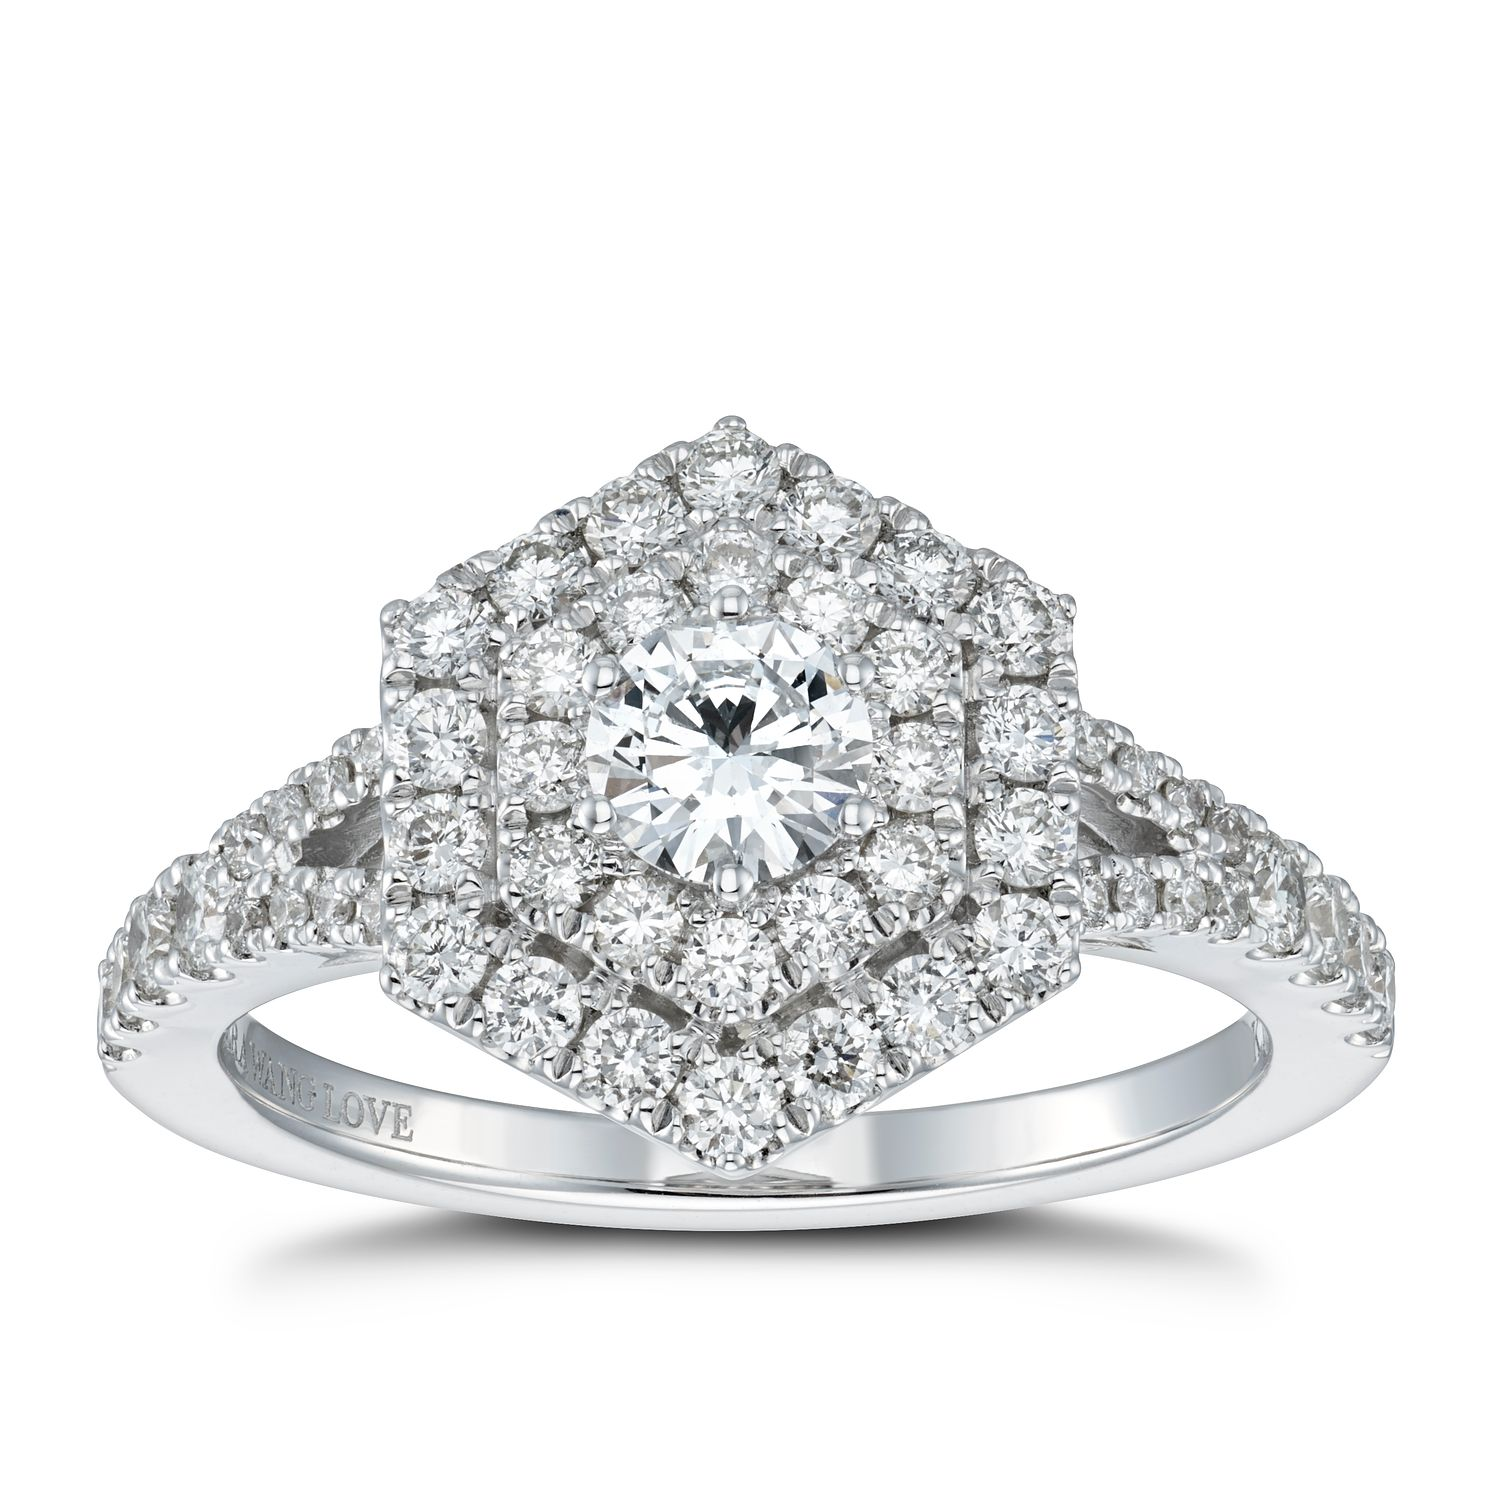 Vera Wang 18ct White Gold 0.95ct Diamond Hexagon Halo Ring - Product number 4503813